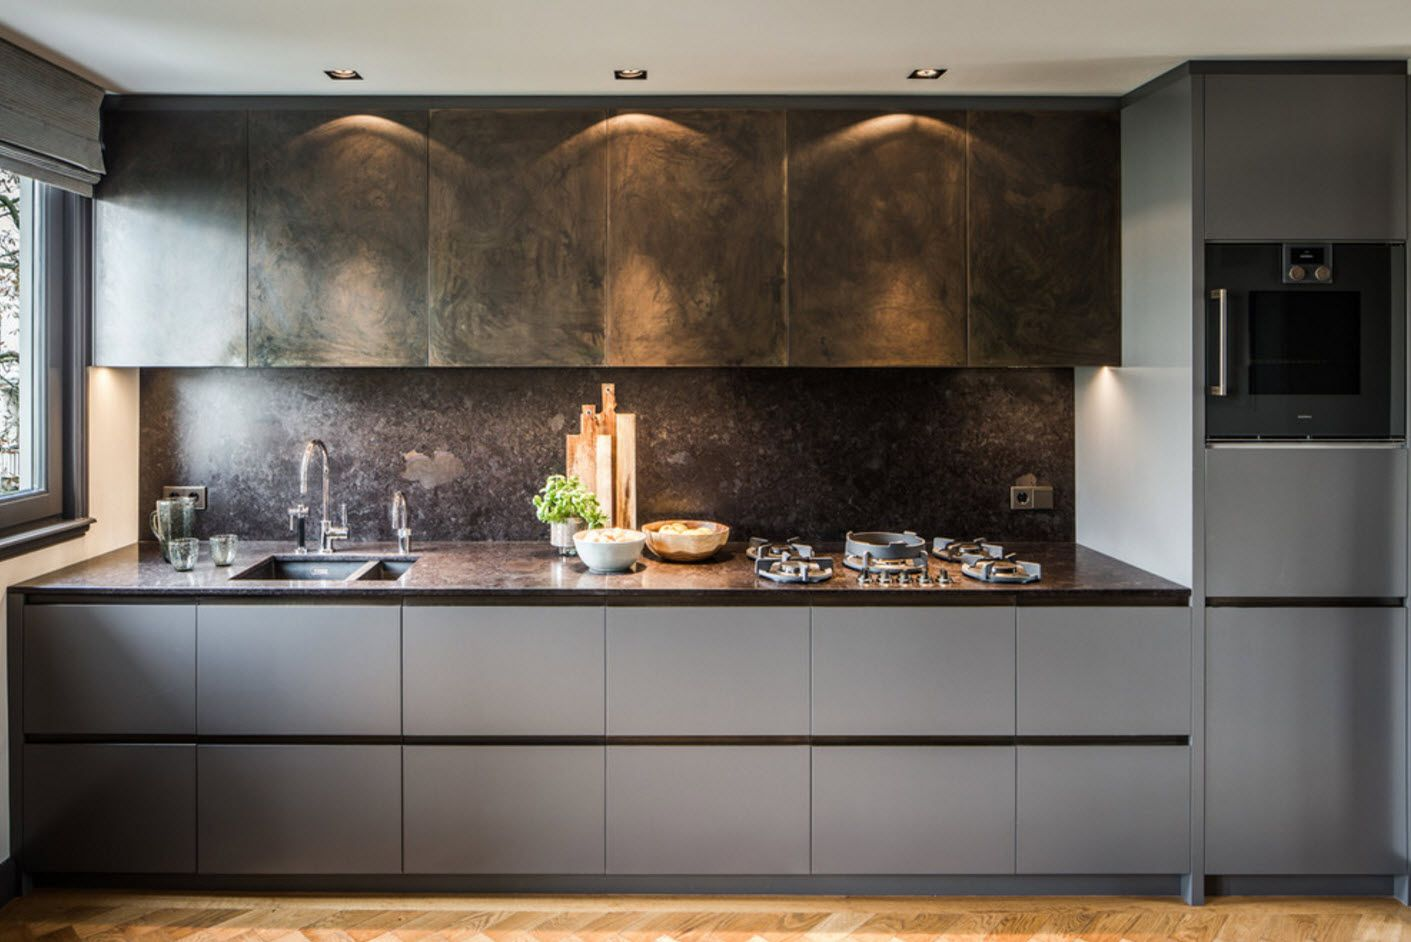 Unusual backlighting for the modern kitchen with dark wooden surfaces